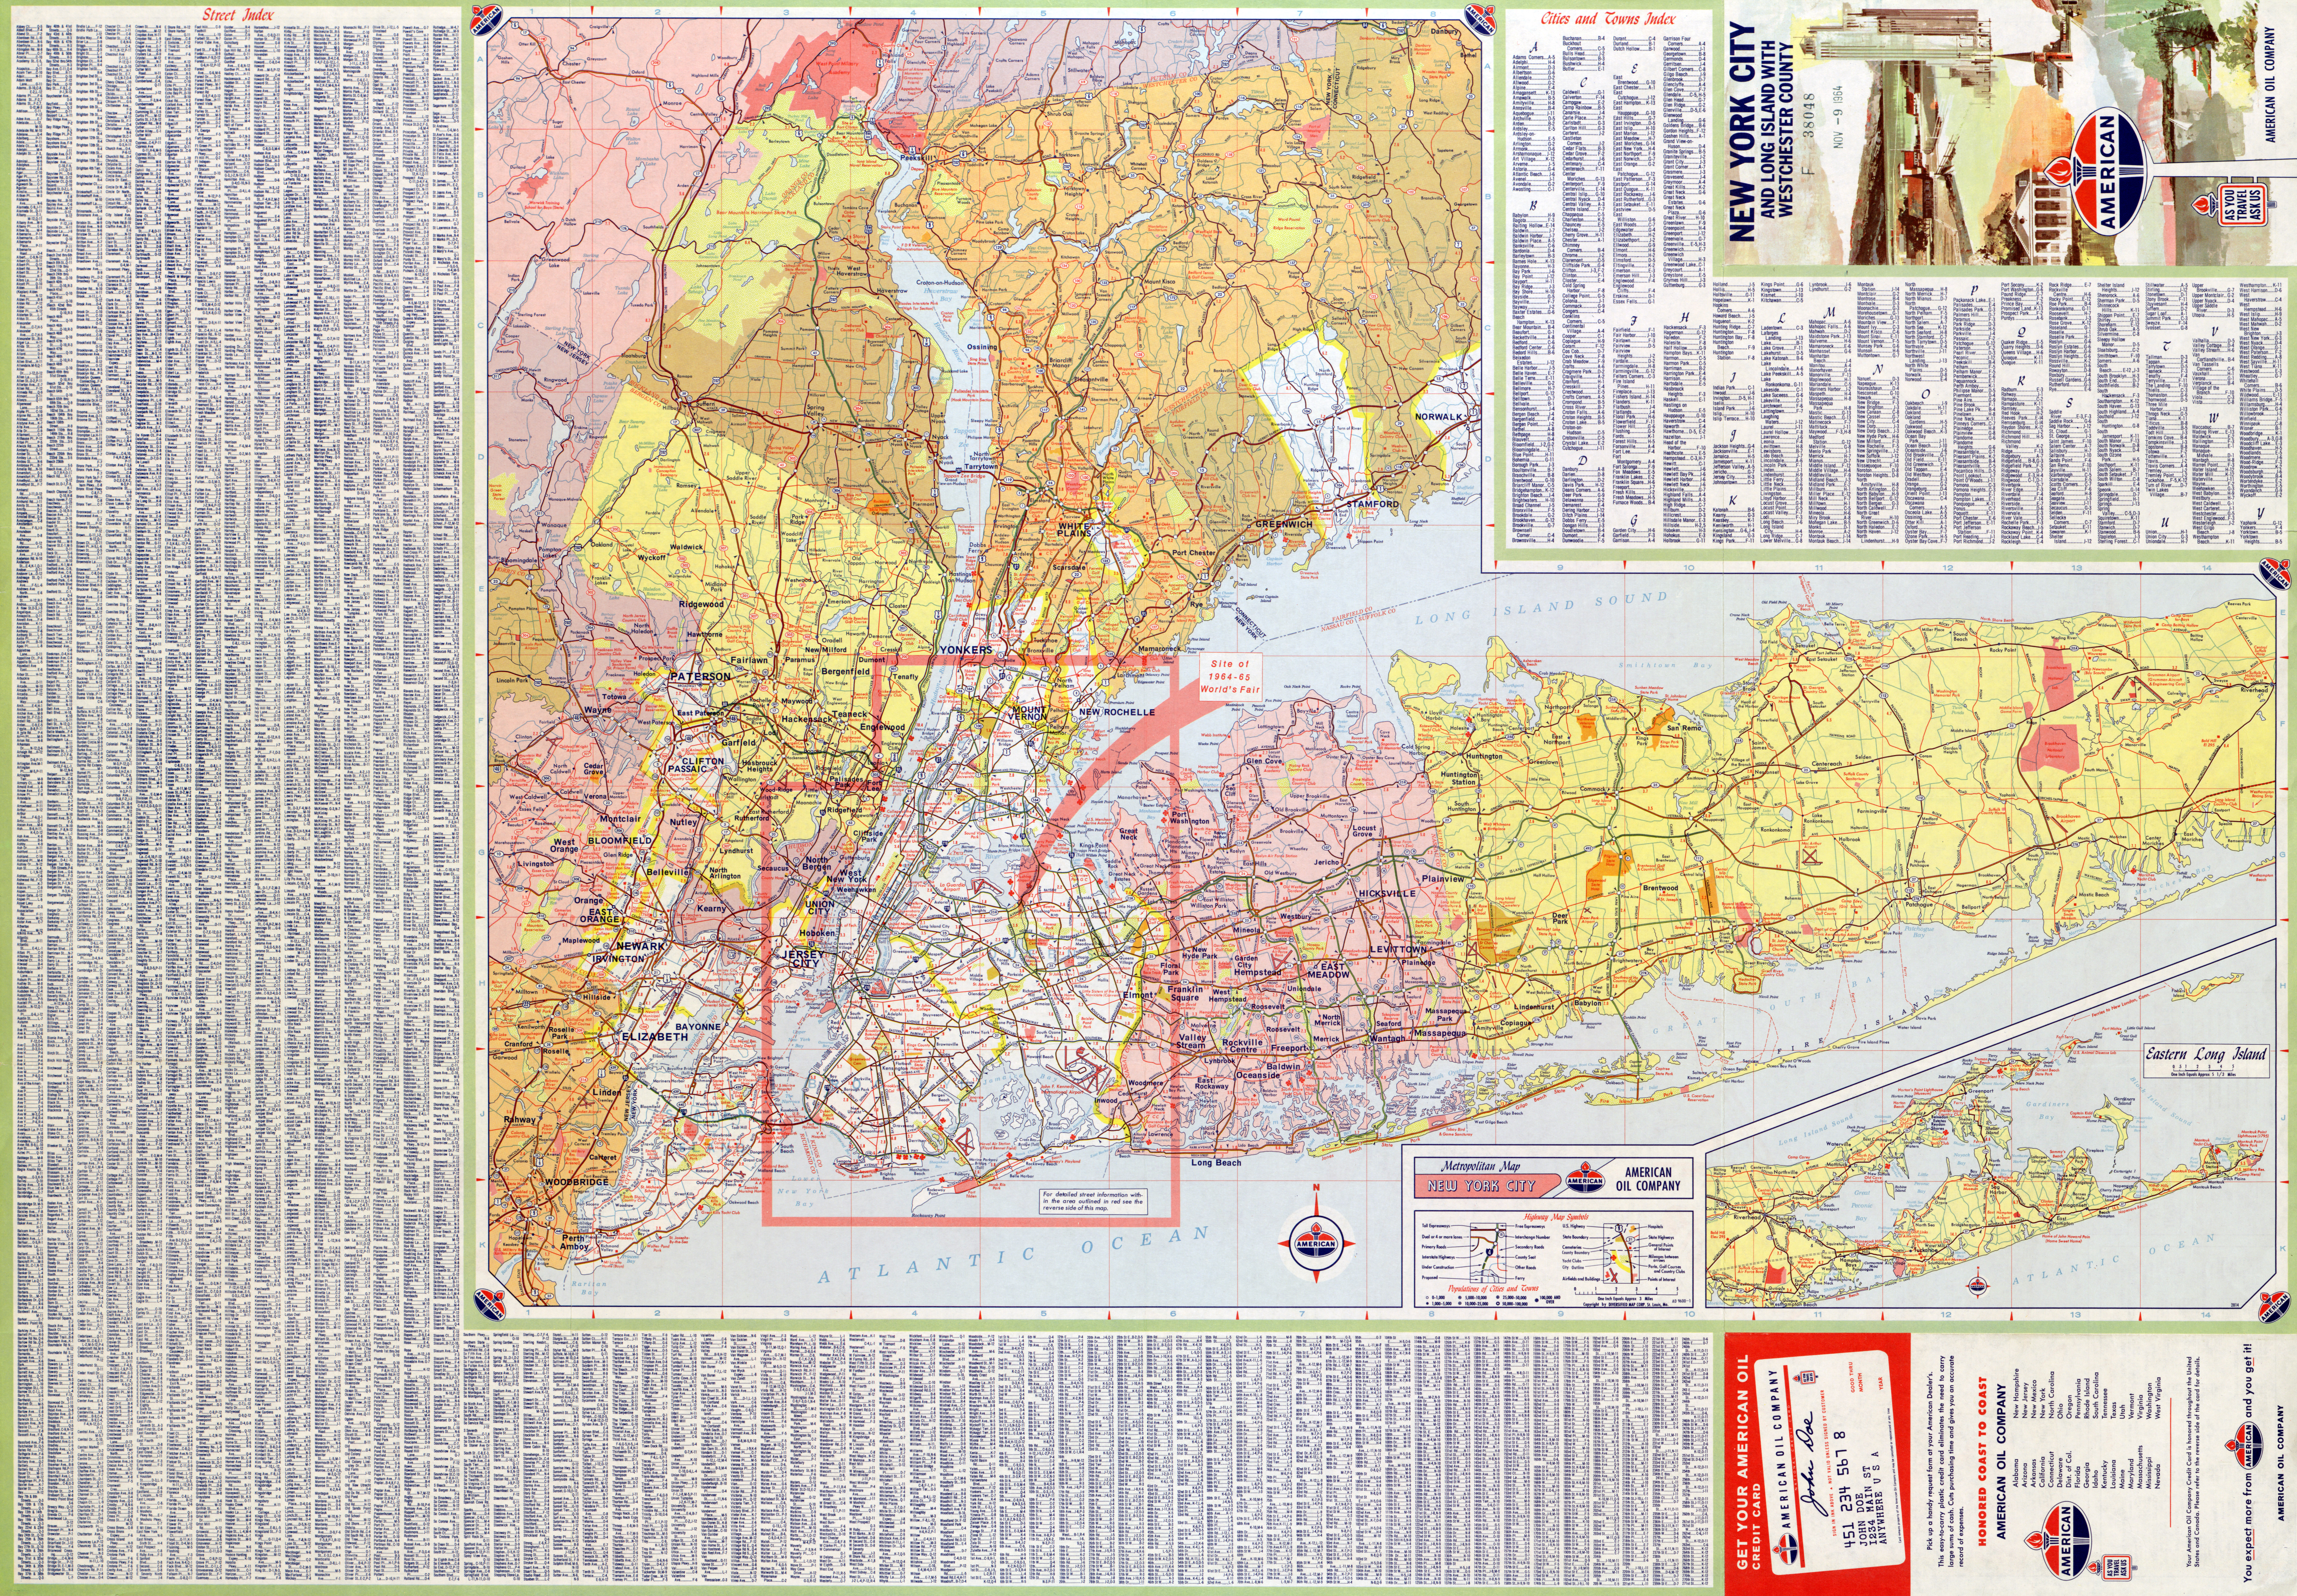 Large Scale HiRes Detailed Roads And Highways Map Of New York City - New york on the map of usa